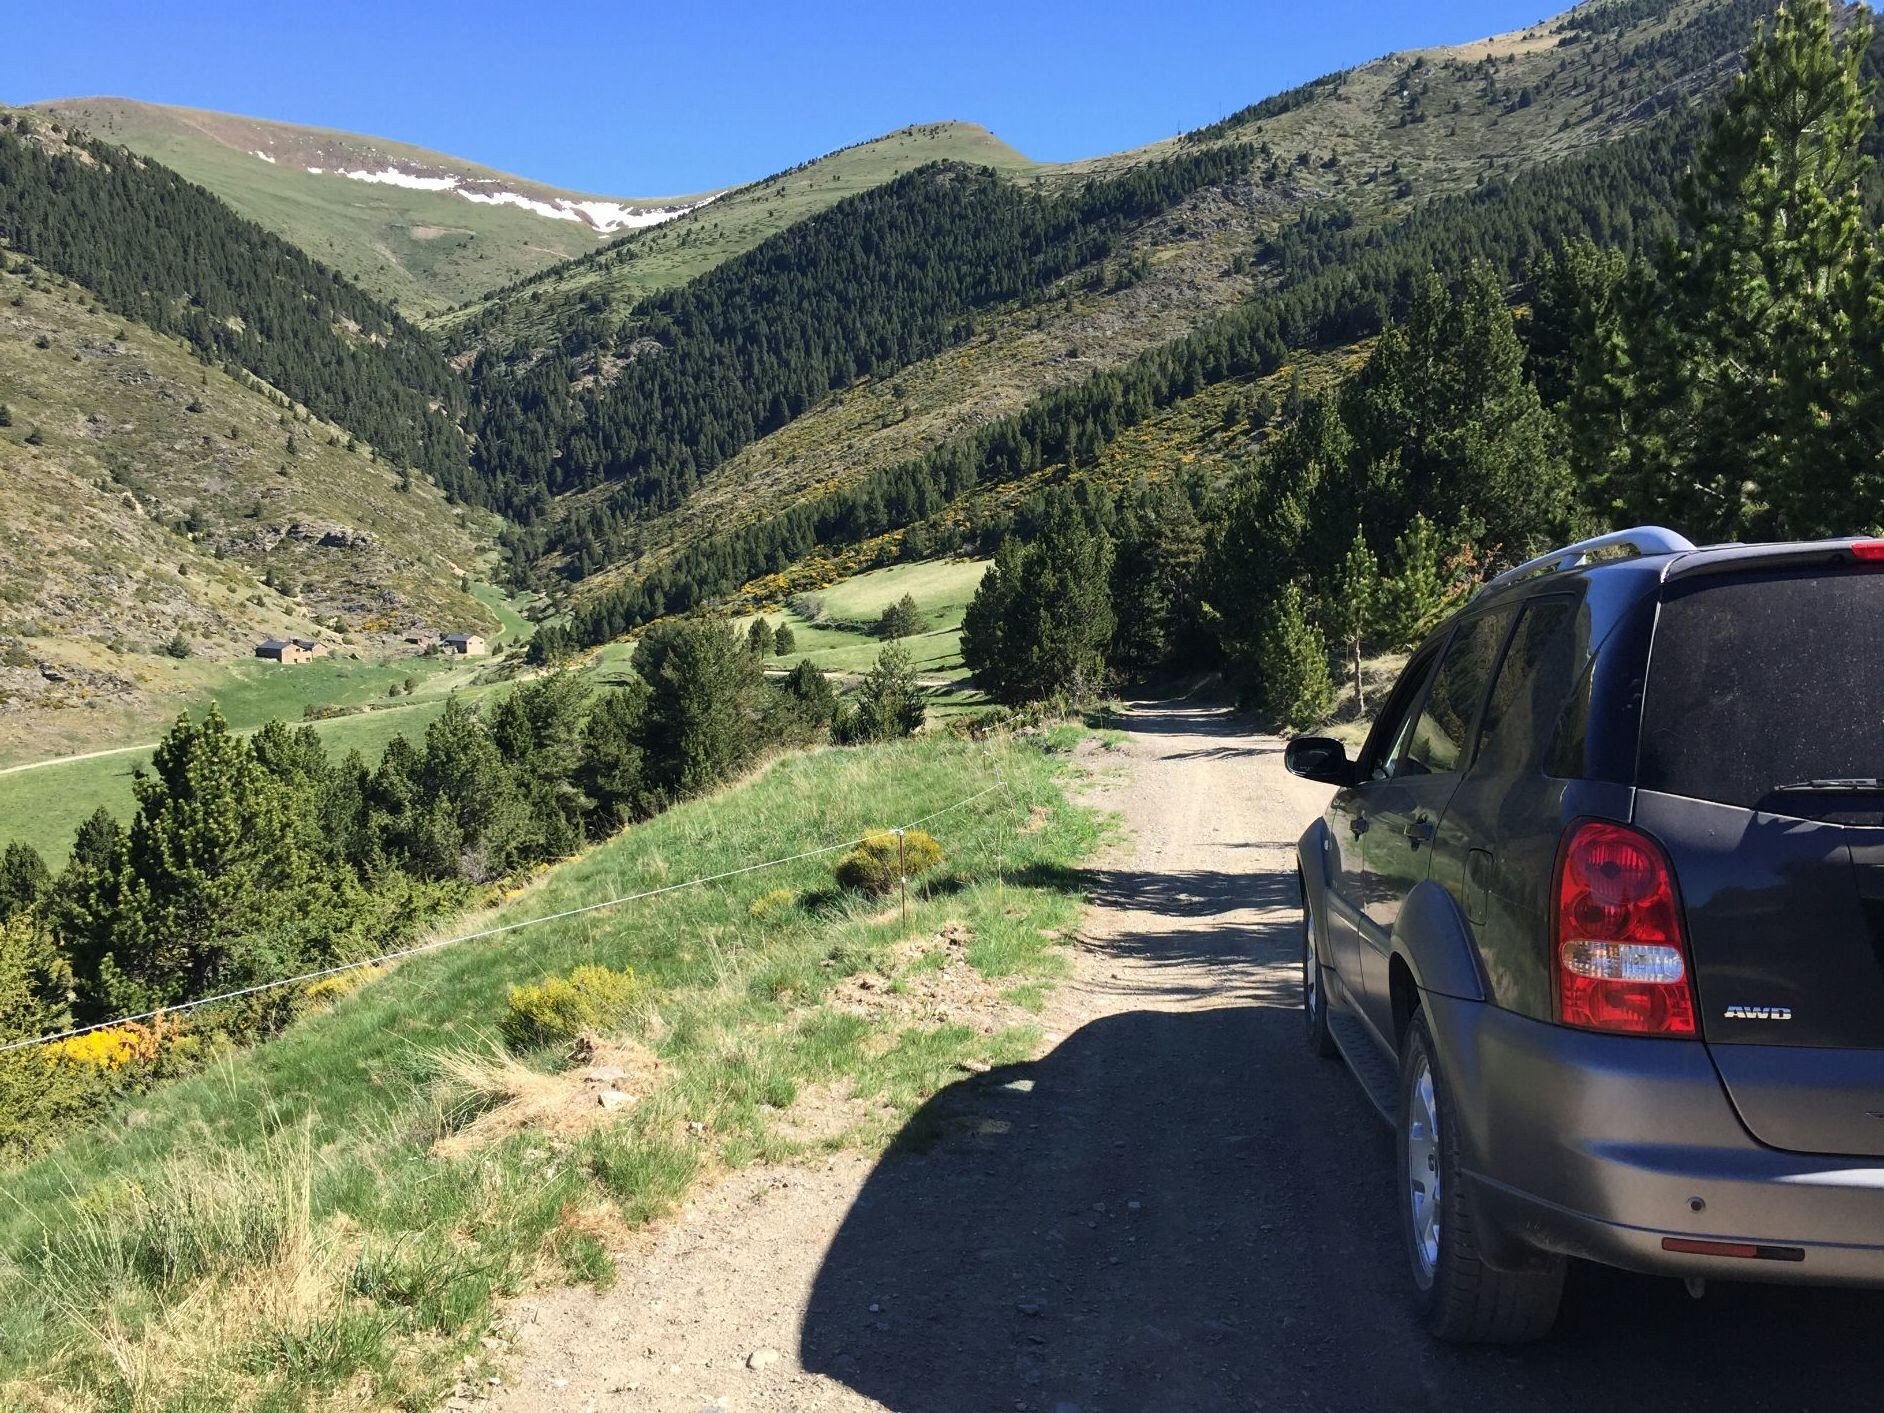 Best photographic Natural Park of the High Pyrenees, enjoy the scenery and photography in a unique and protected site, only € 31 per person price includes a small snack with local products